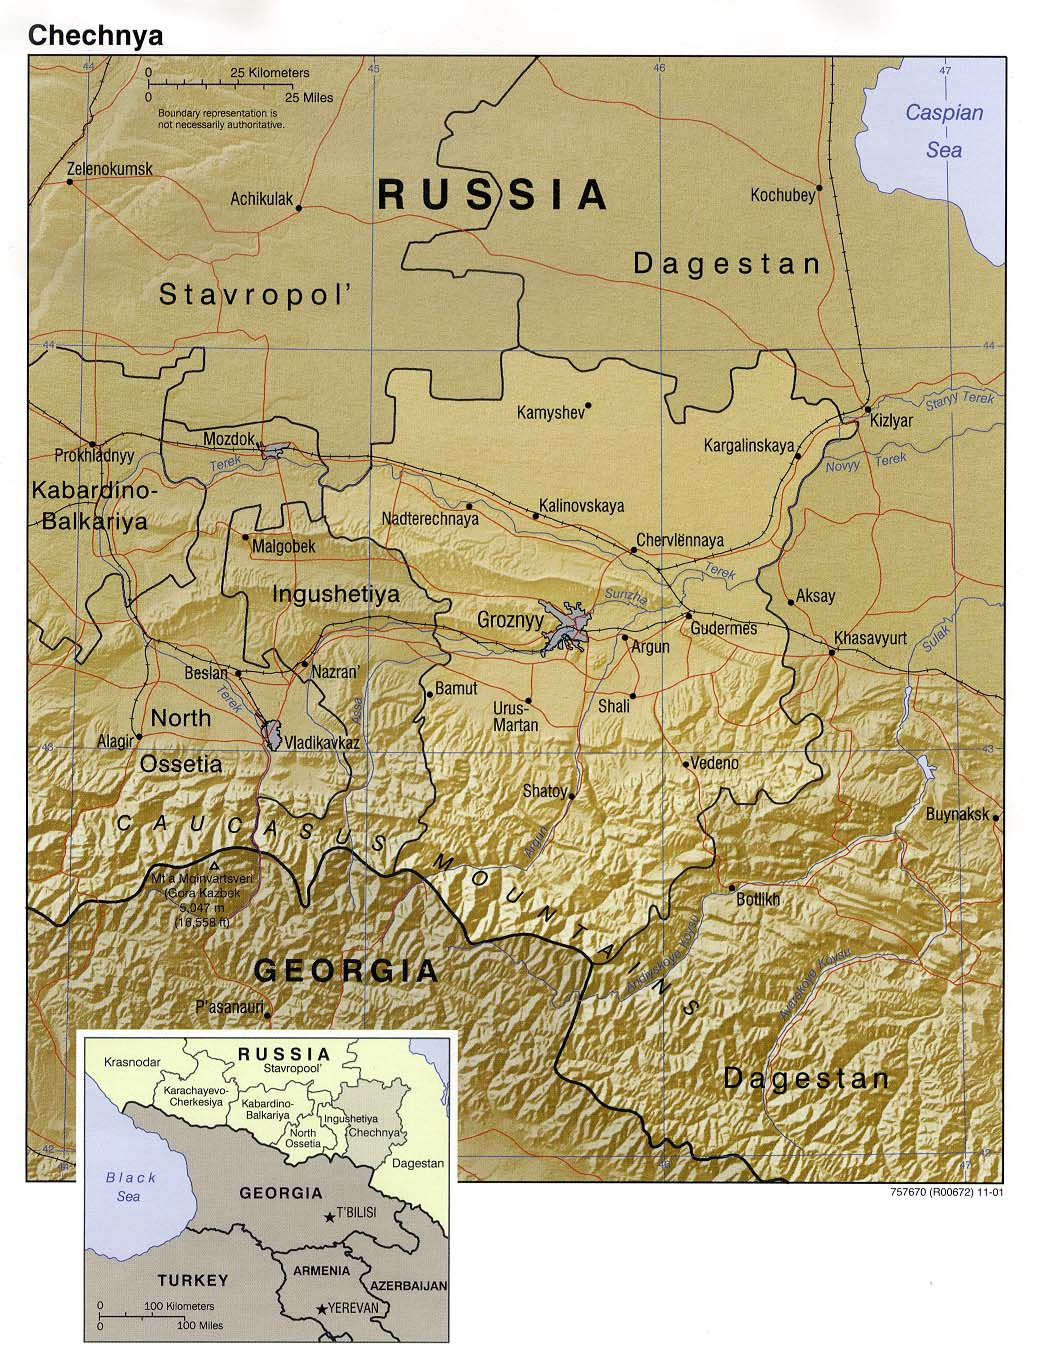 russias unjust occupation of chechnya Russian occupation in chechnya russian occupation in chechnya russian occupation in chechnya introduction chechens are an ethnic minority living primarily in russia's.